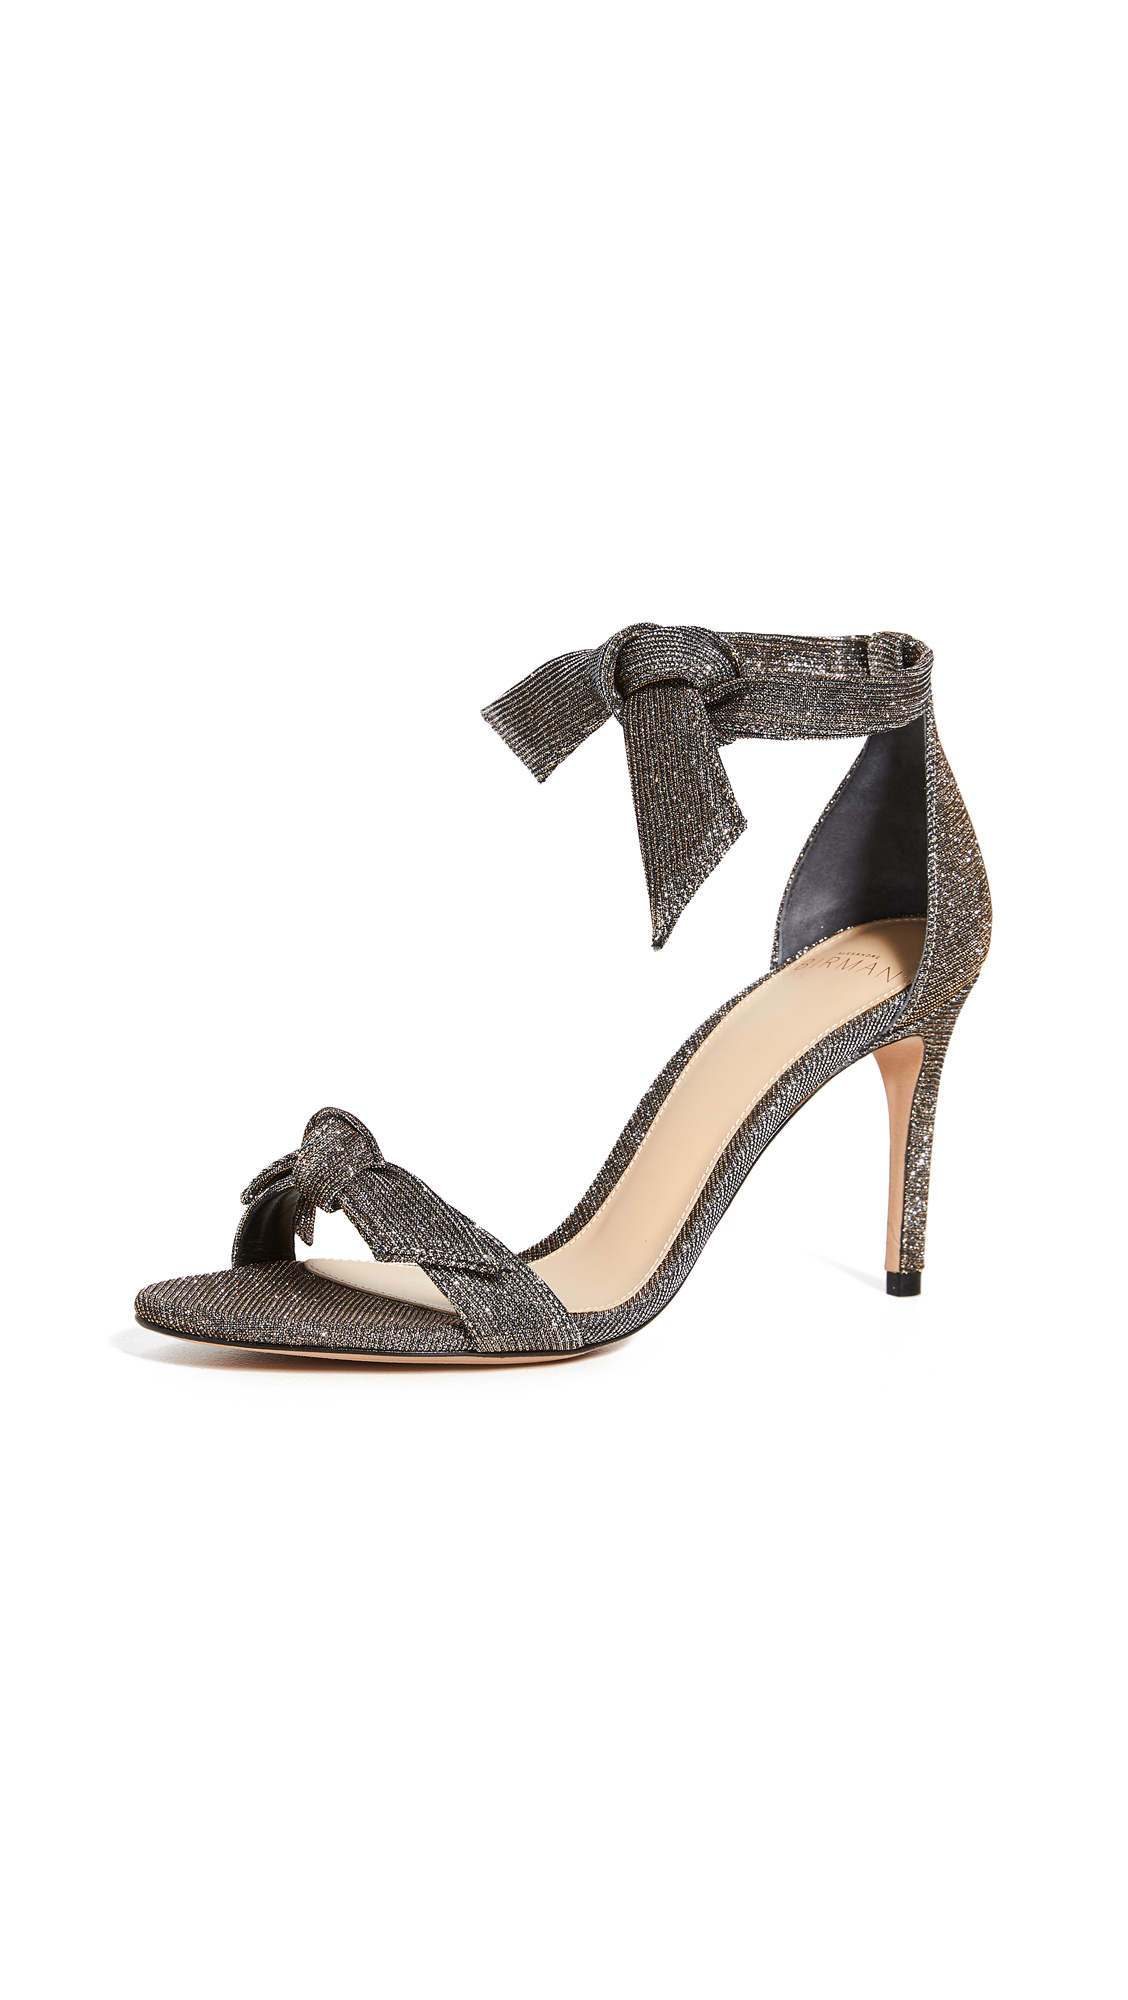 Buy Alexandre Birman 85mm Clarita Sandals online, shop Alexandre Birman